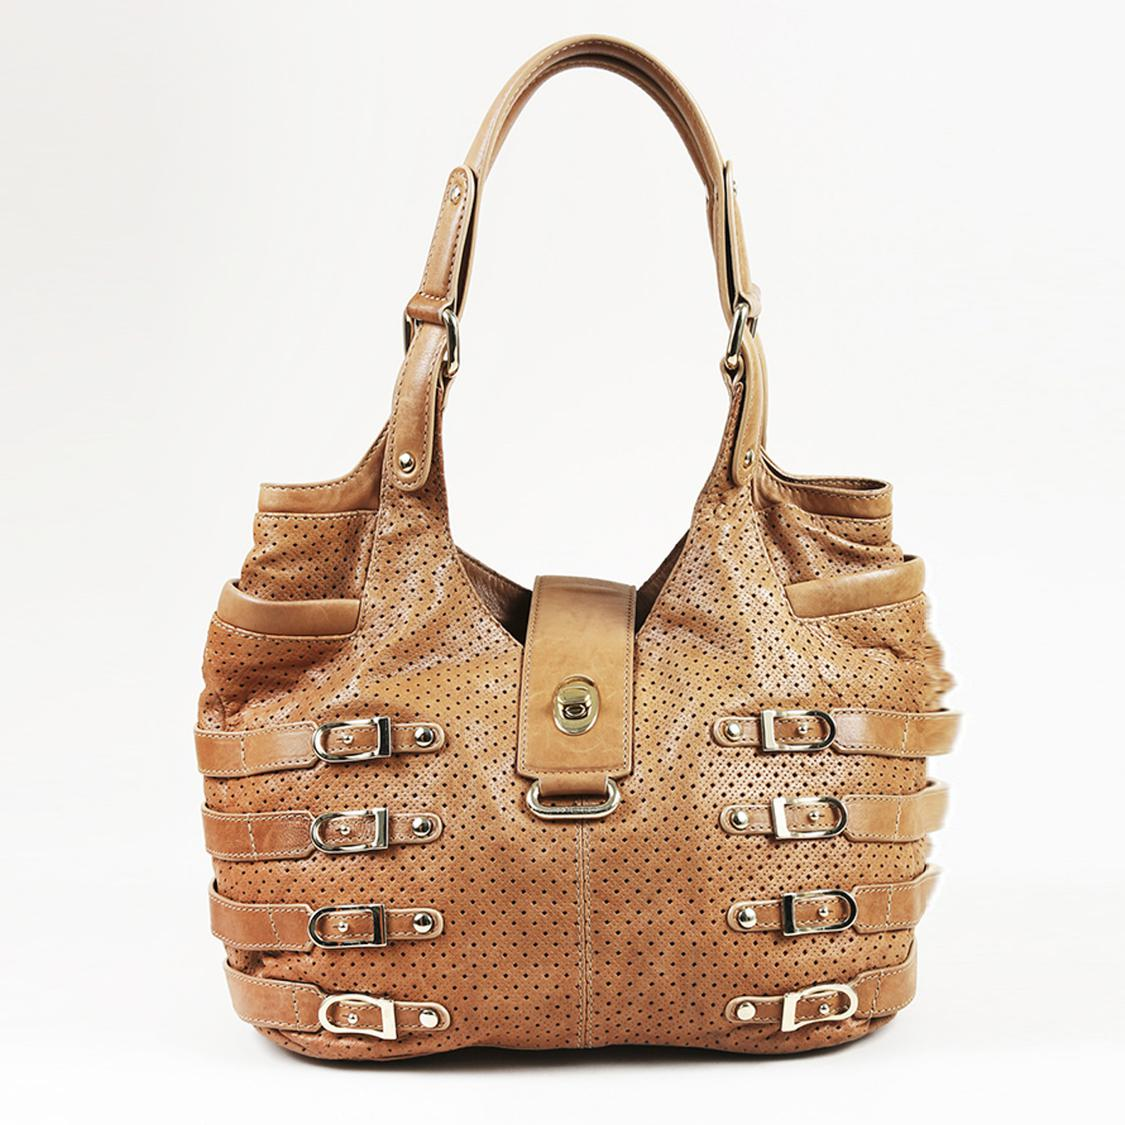 85e81738c4 Lyst - Jimmy Choo Brown Leather Perforated   Buckled Shoulder Bag in ...